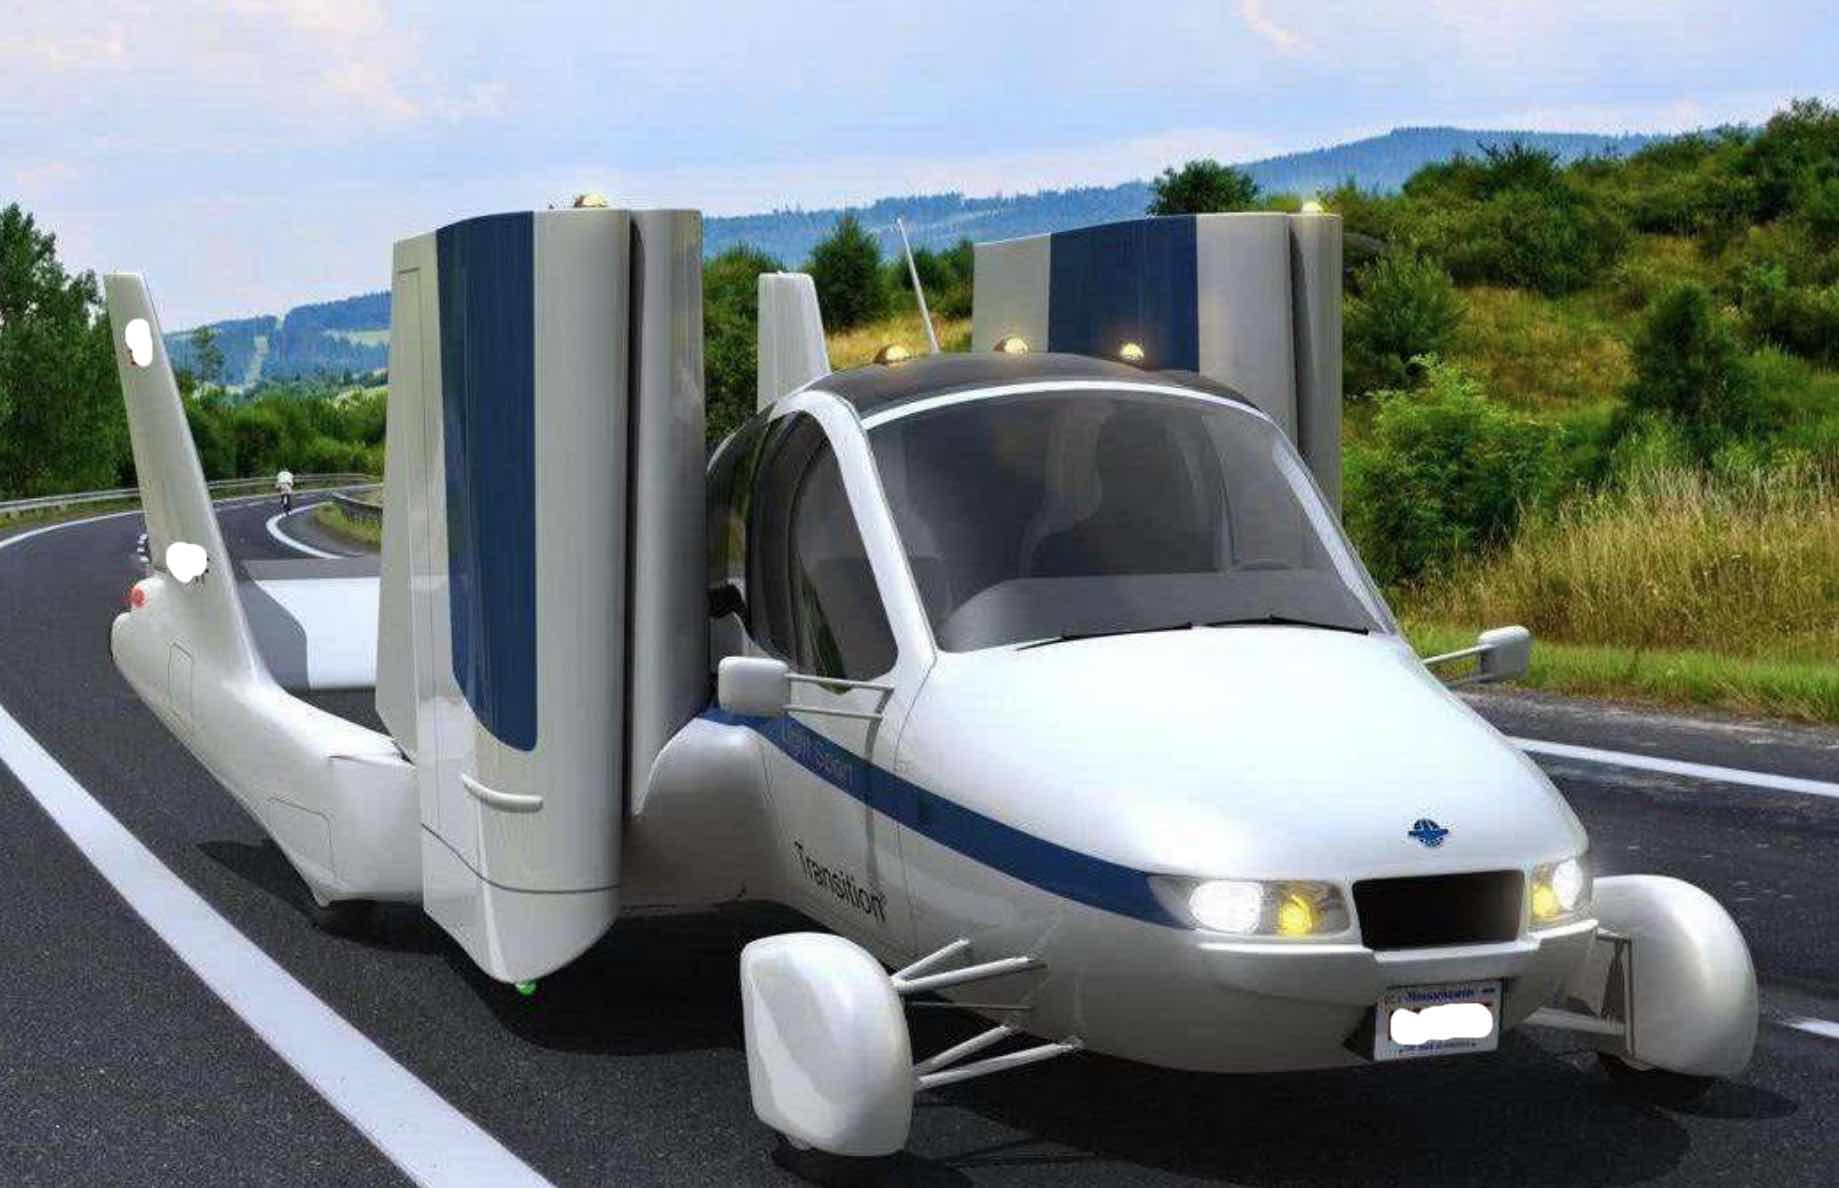 Geely's first flying car with hybrid engine & parachute system will be put in production next year